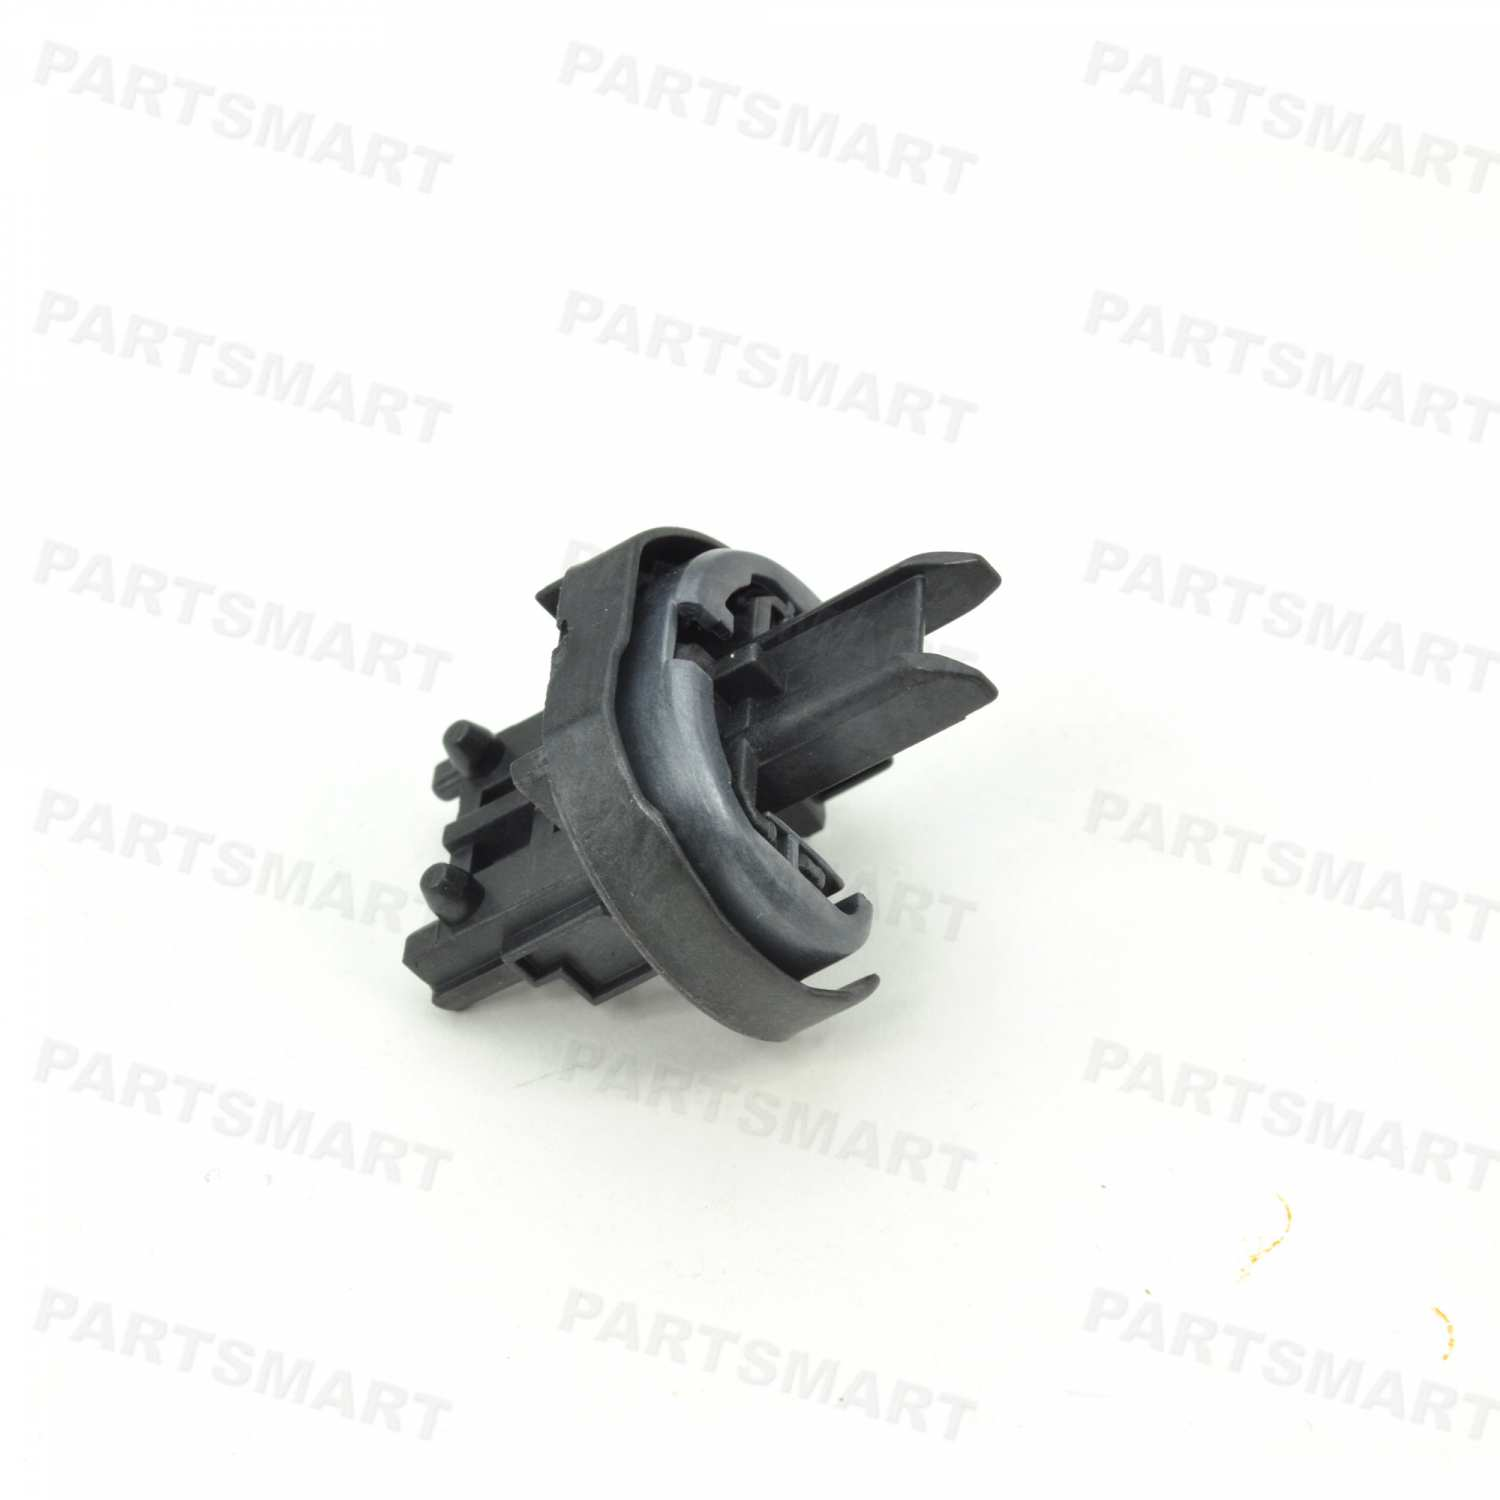 FLNG-P4014 Flange, Fuser for HP LaserJet Enterprise 600 M601dn, LaserJet Enterprise 600 M601n